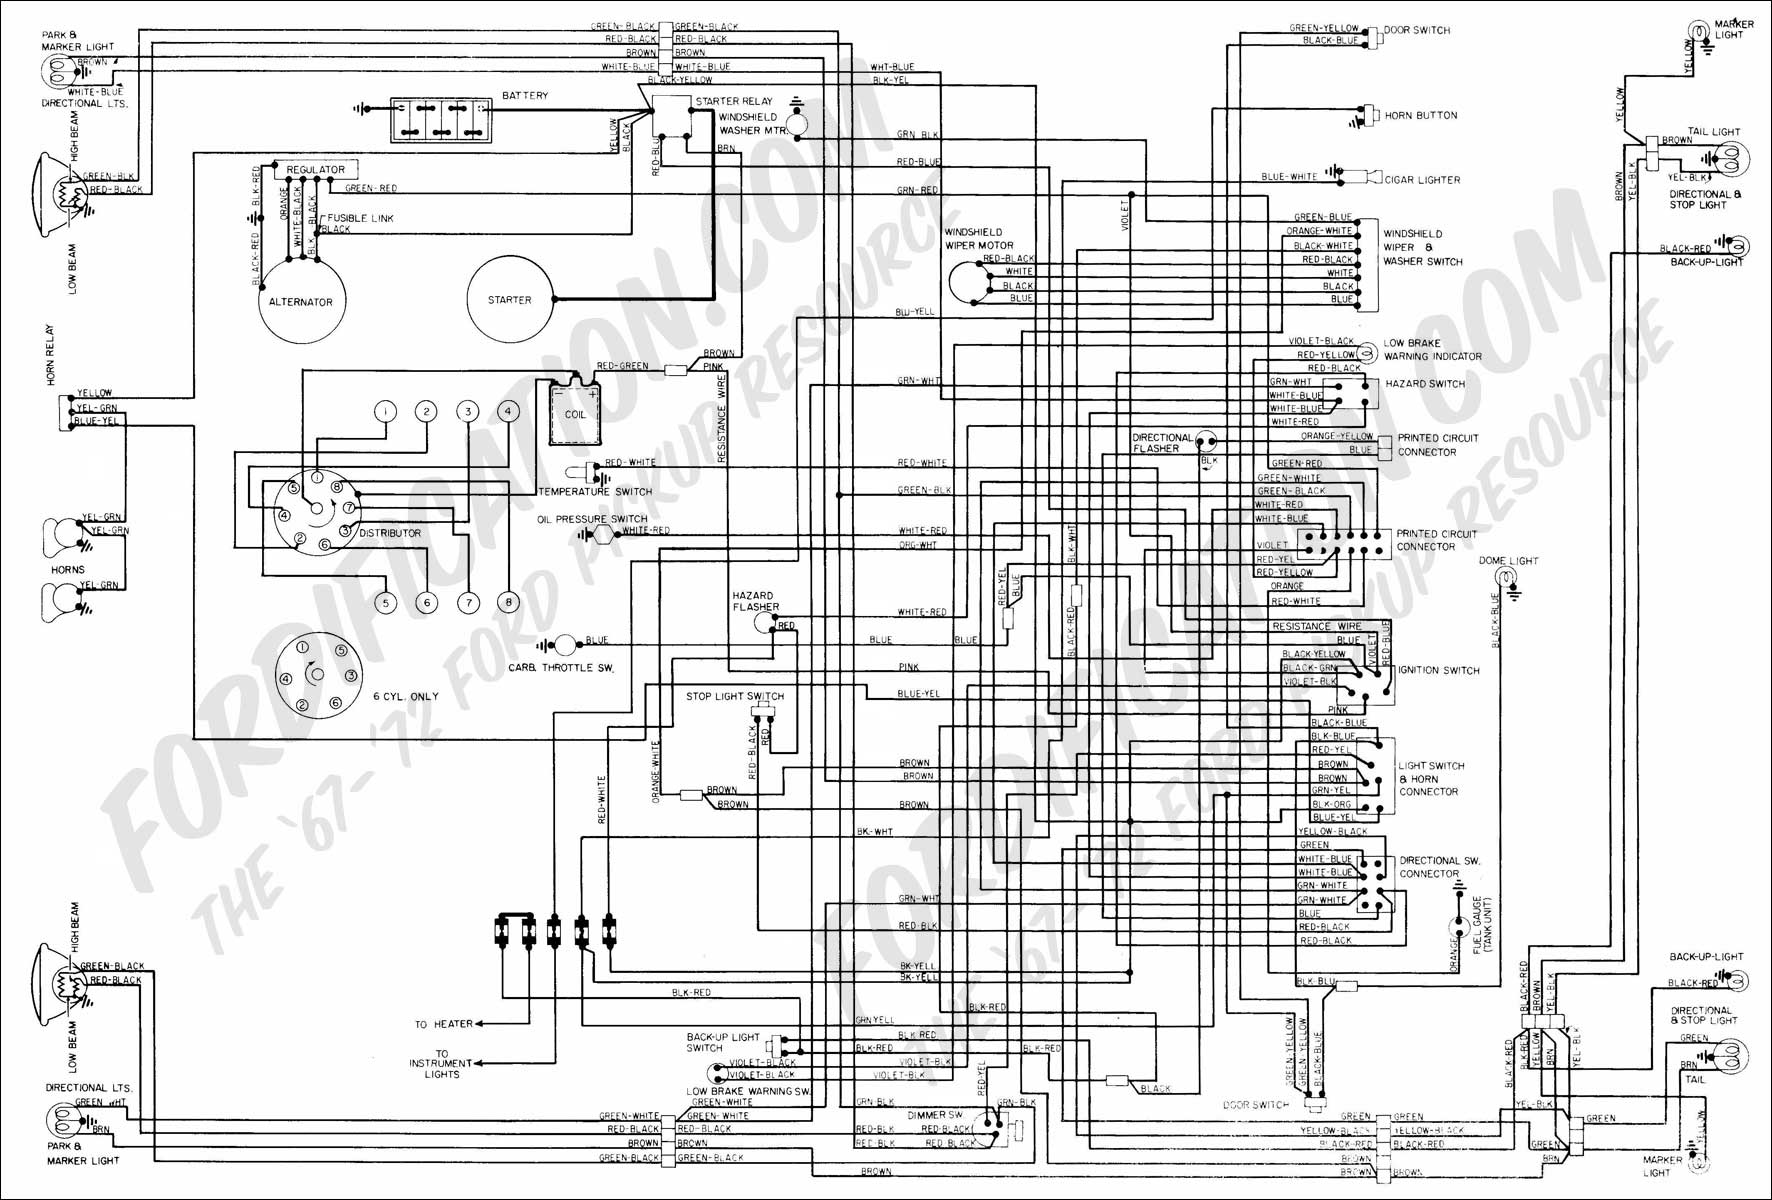 wiring diagram 72_quick 1970 ford mustang mercury cougar original wiring diagram 1997 ford mustang wiring diagram at gsmx.co